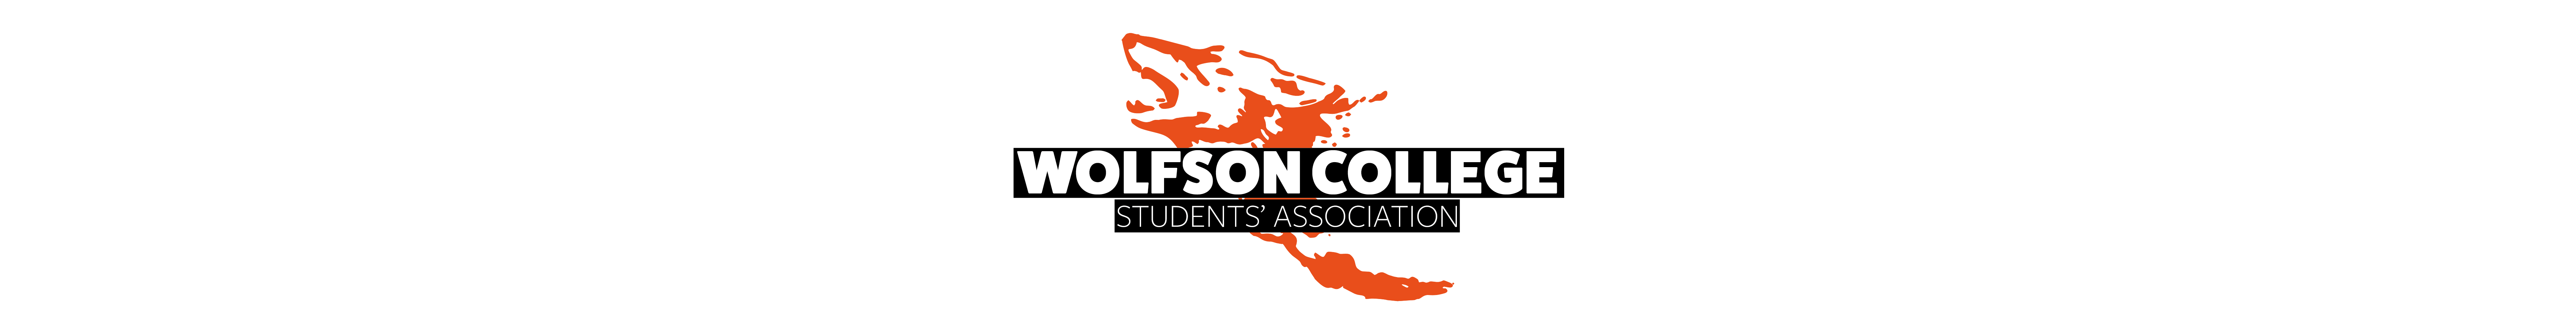 Wolfson College Students' Association Retina Logo